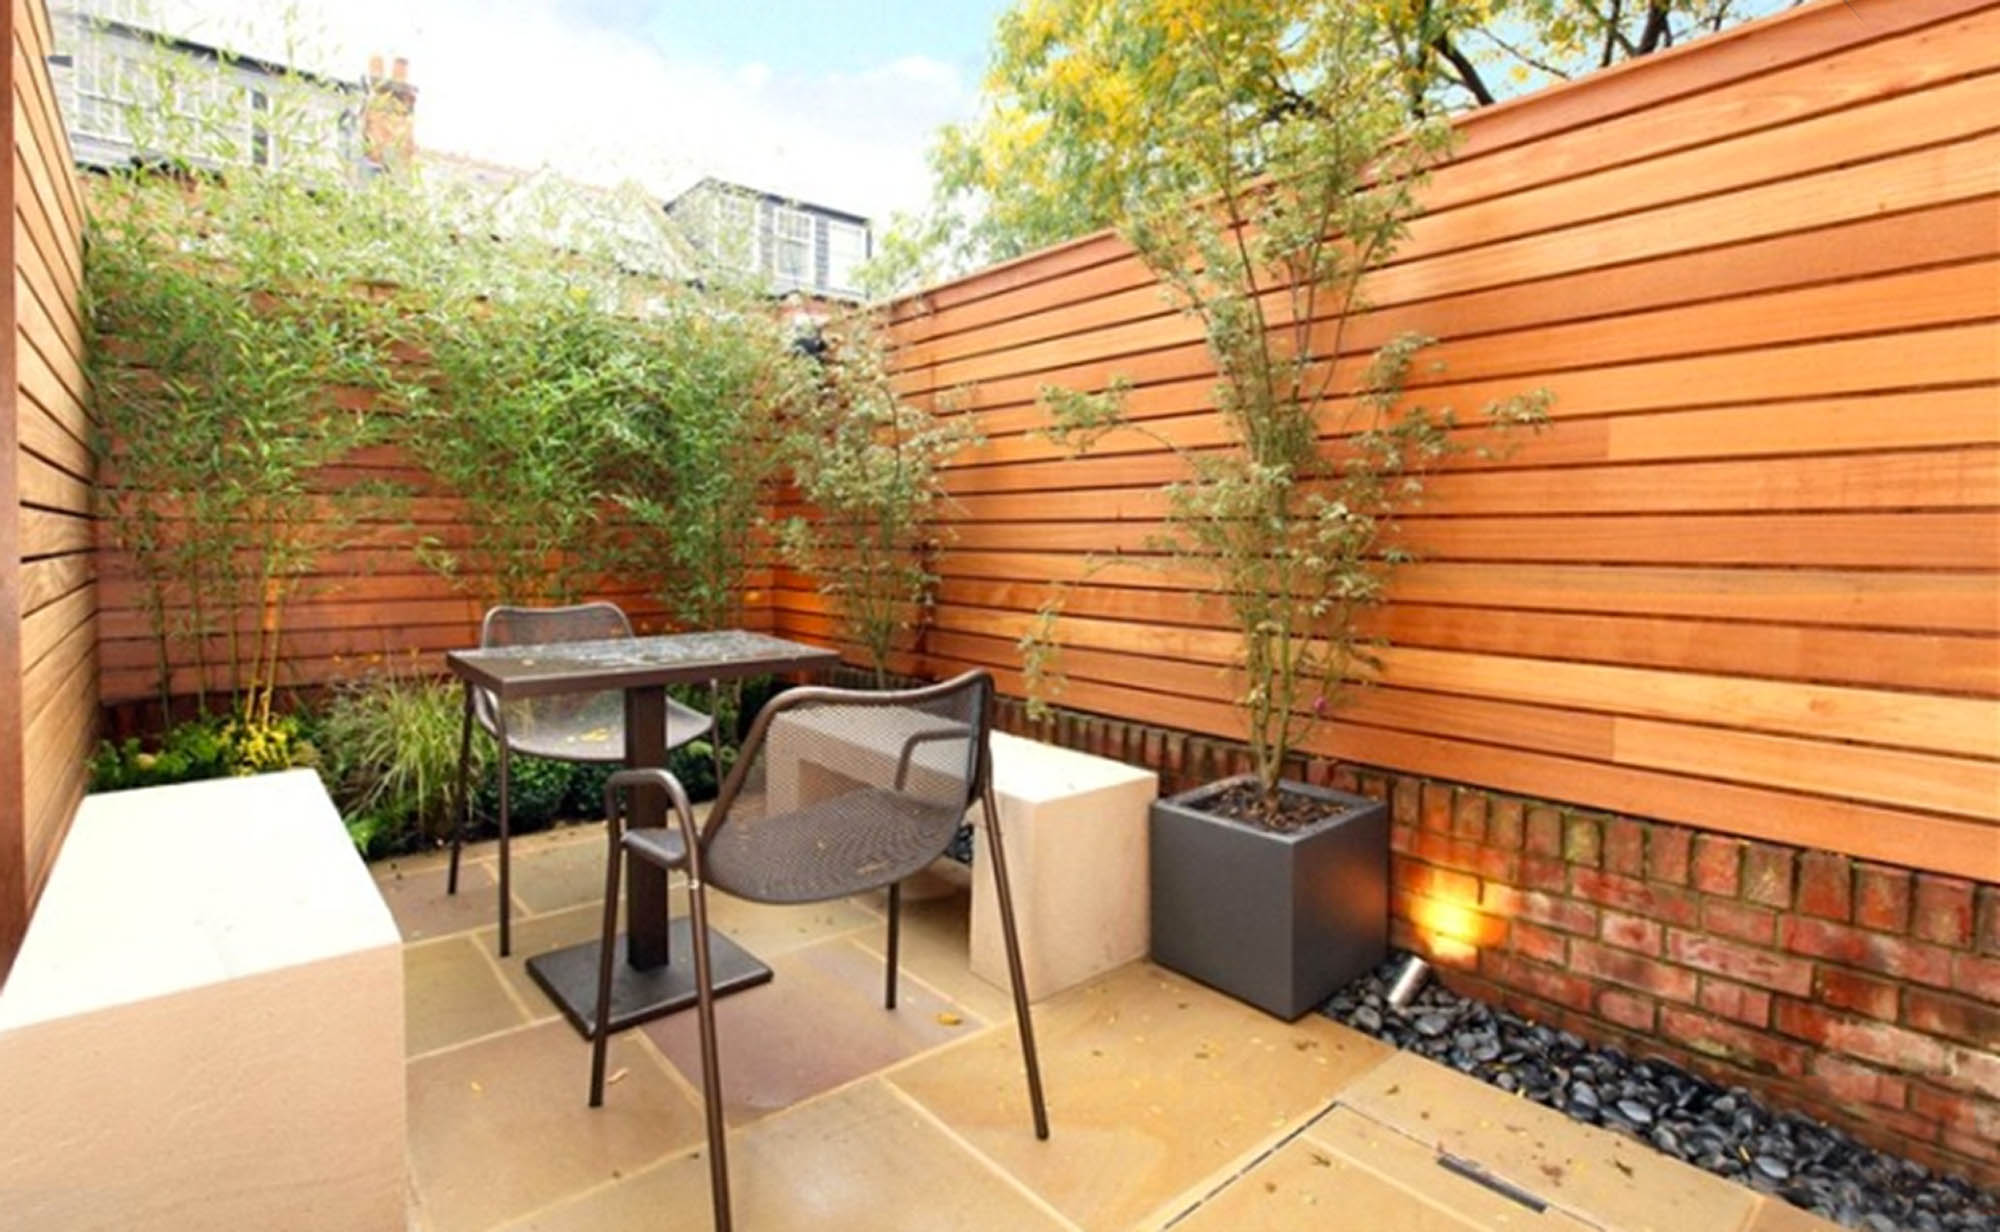 Putney Home Refurbishment - Modern landscaped courtyard with horizontal wooden fencing